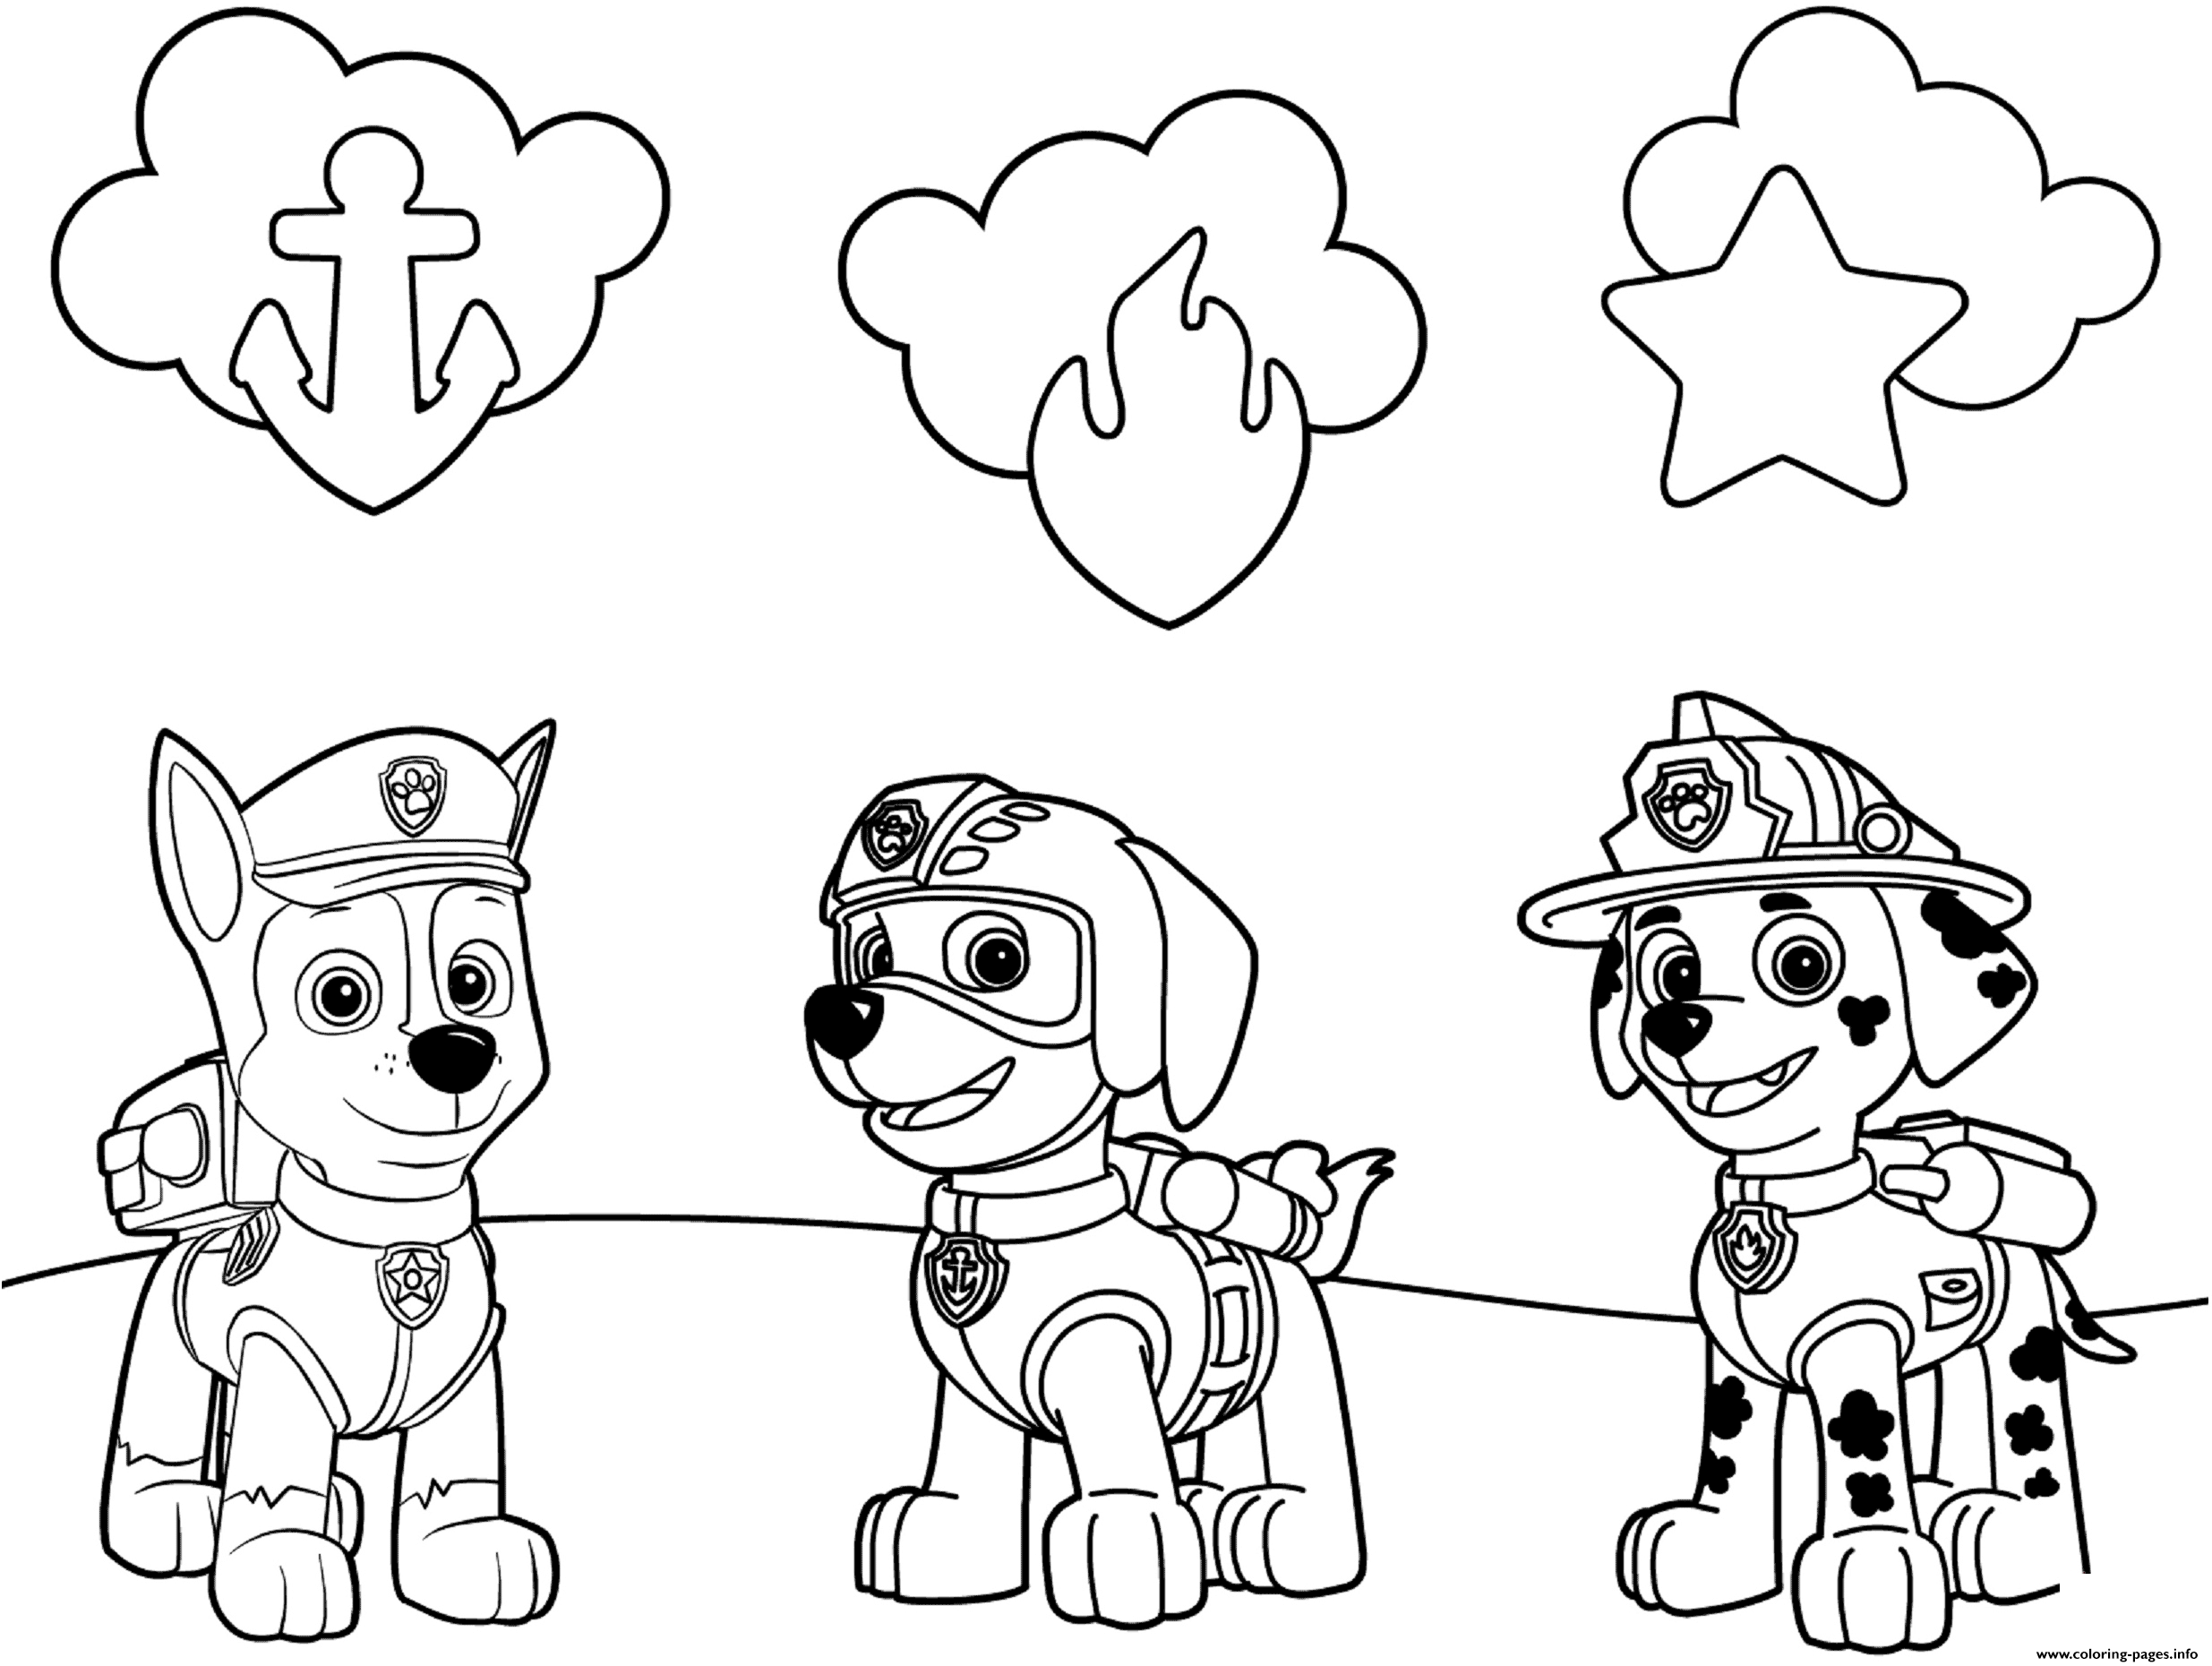 Its Ryder And The PAW Patrol All Stars In This Fun Coloring Page